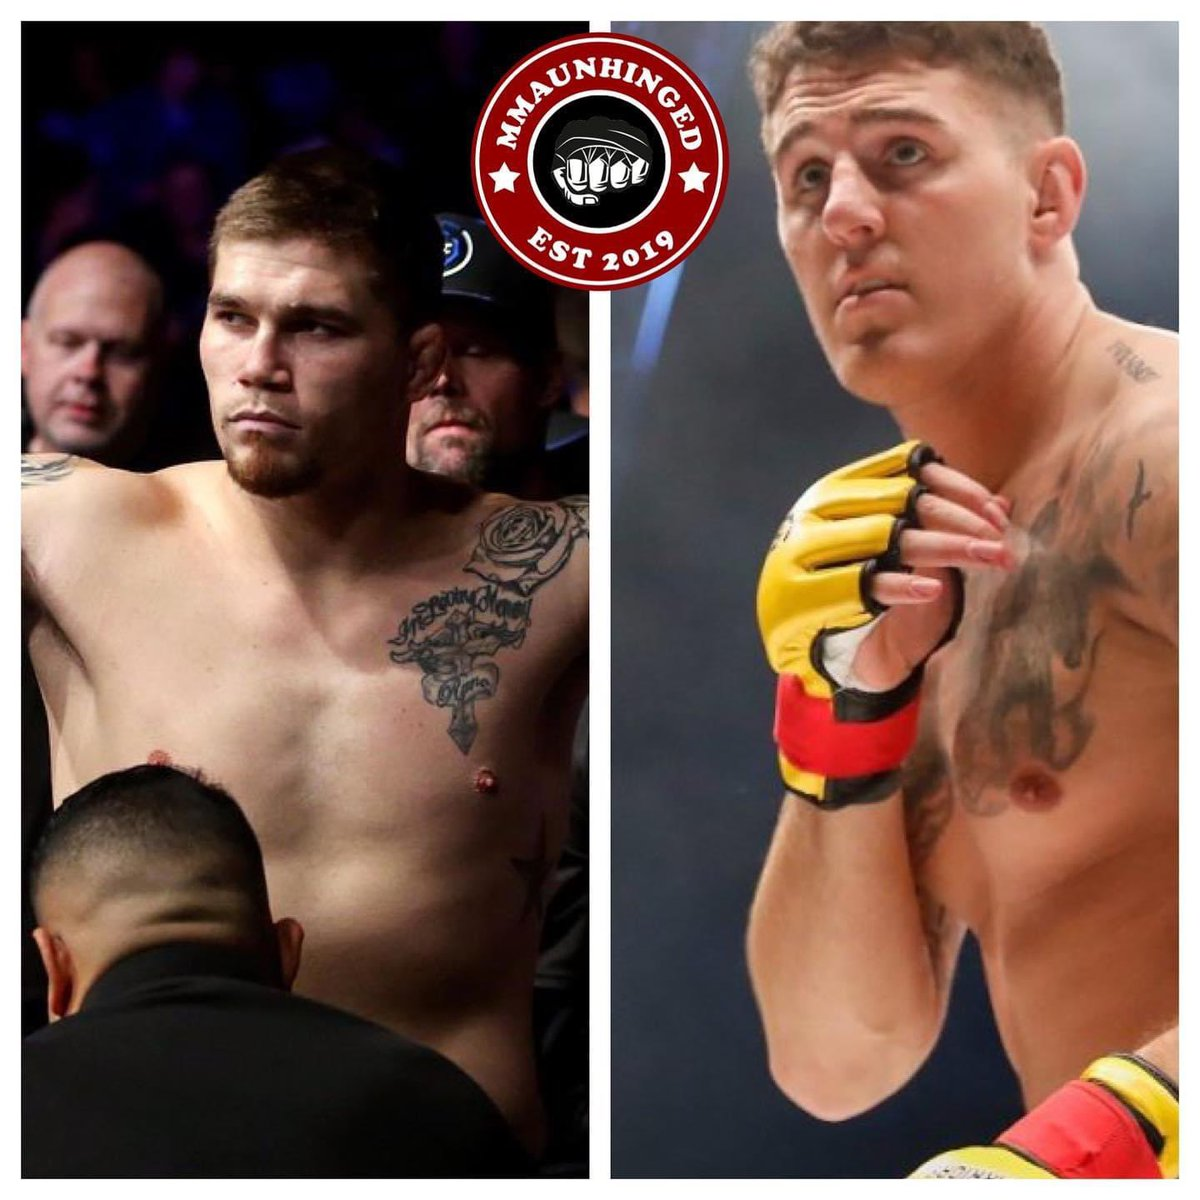 #BREAKING: Jake Collier vs. Tom Aspinall @Jakecollier88  Added to UFC's July 25 event on Yas Island, Abu Dhabi (Heavyweight) - #UFC #MMA #JakeCollier #TomAspinall #Fight https://t.co/omncUalY7v